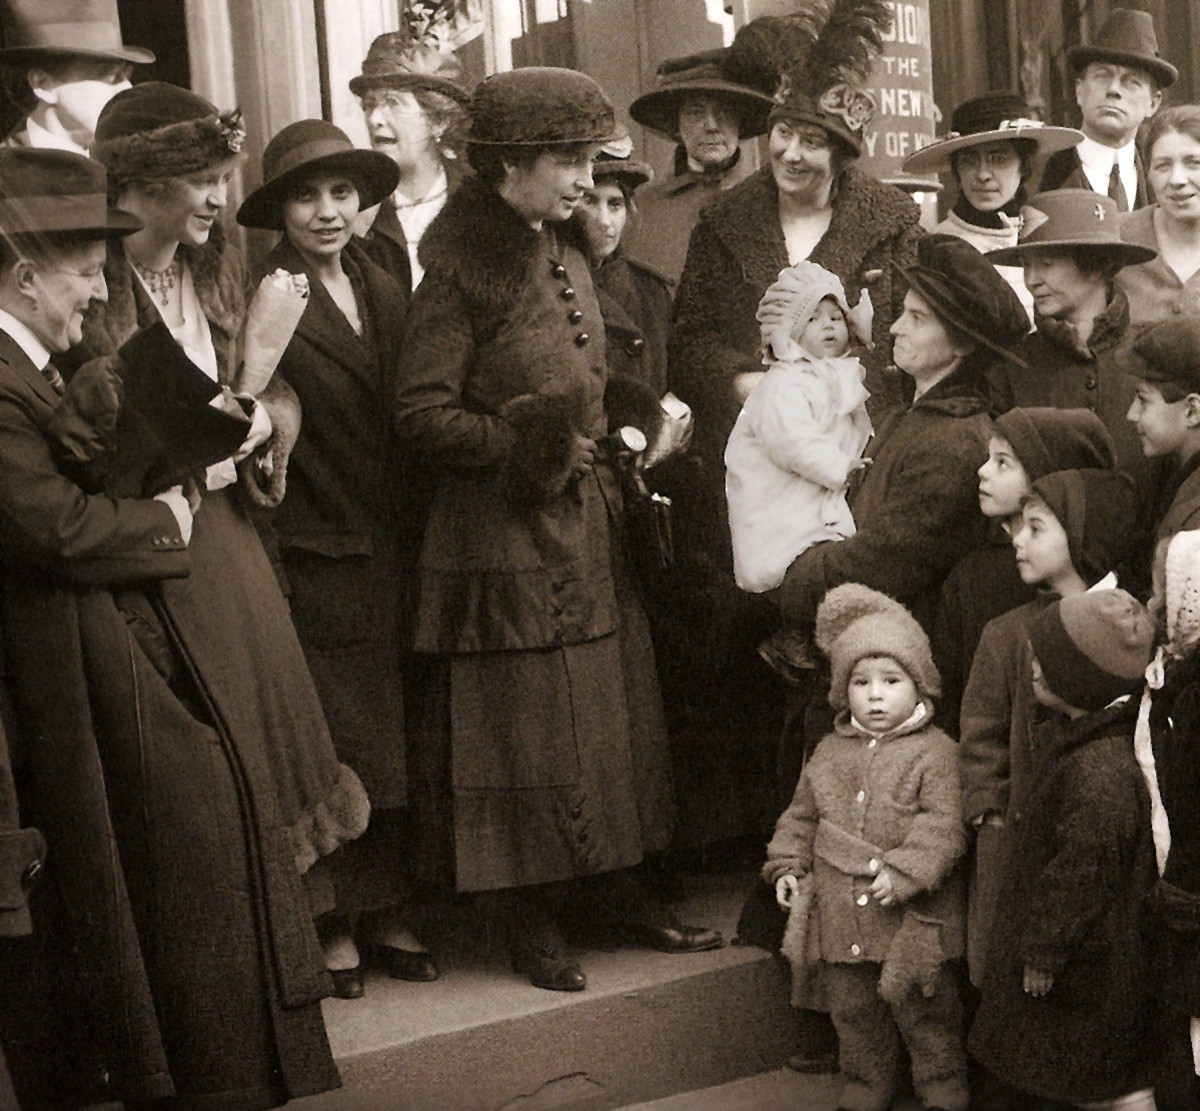 Changing Attitudes towards Birth Control During the Great Depression